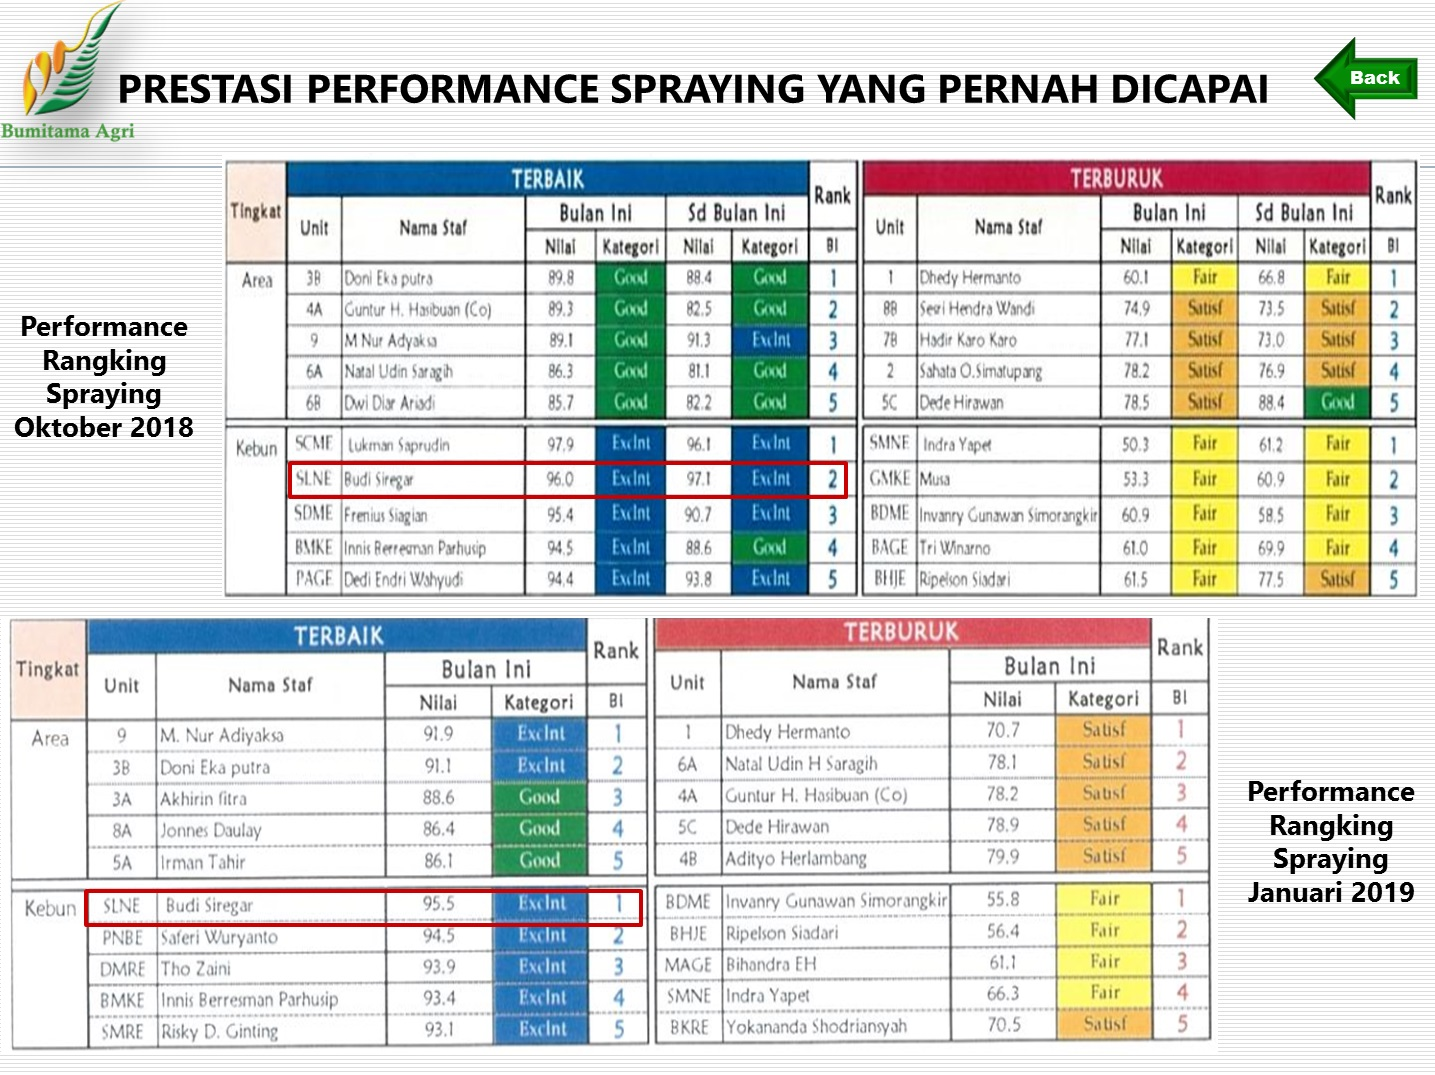 Prestasi Performance Spraying Tahun 2018